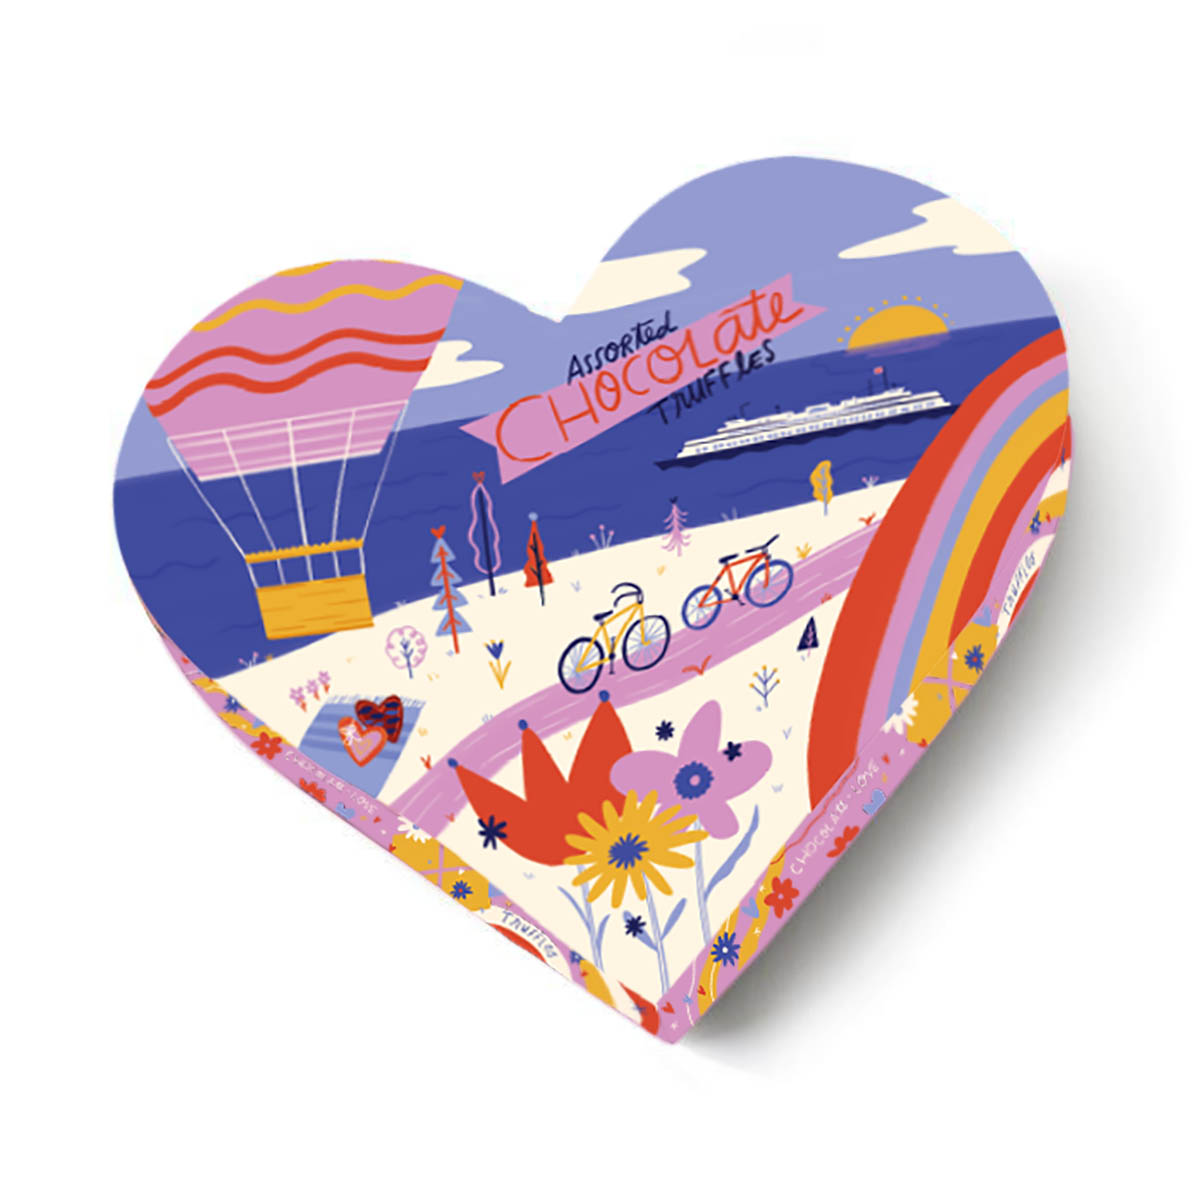 Heart-shaped 6 oz assorted chocolate truffles box with imagery of a bicycle path, body of water, and hot air balloon in vibrant colors